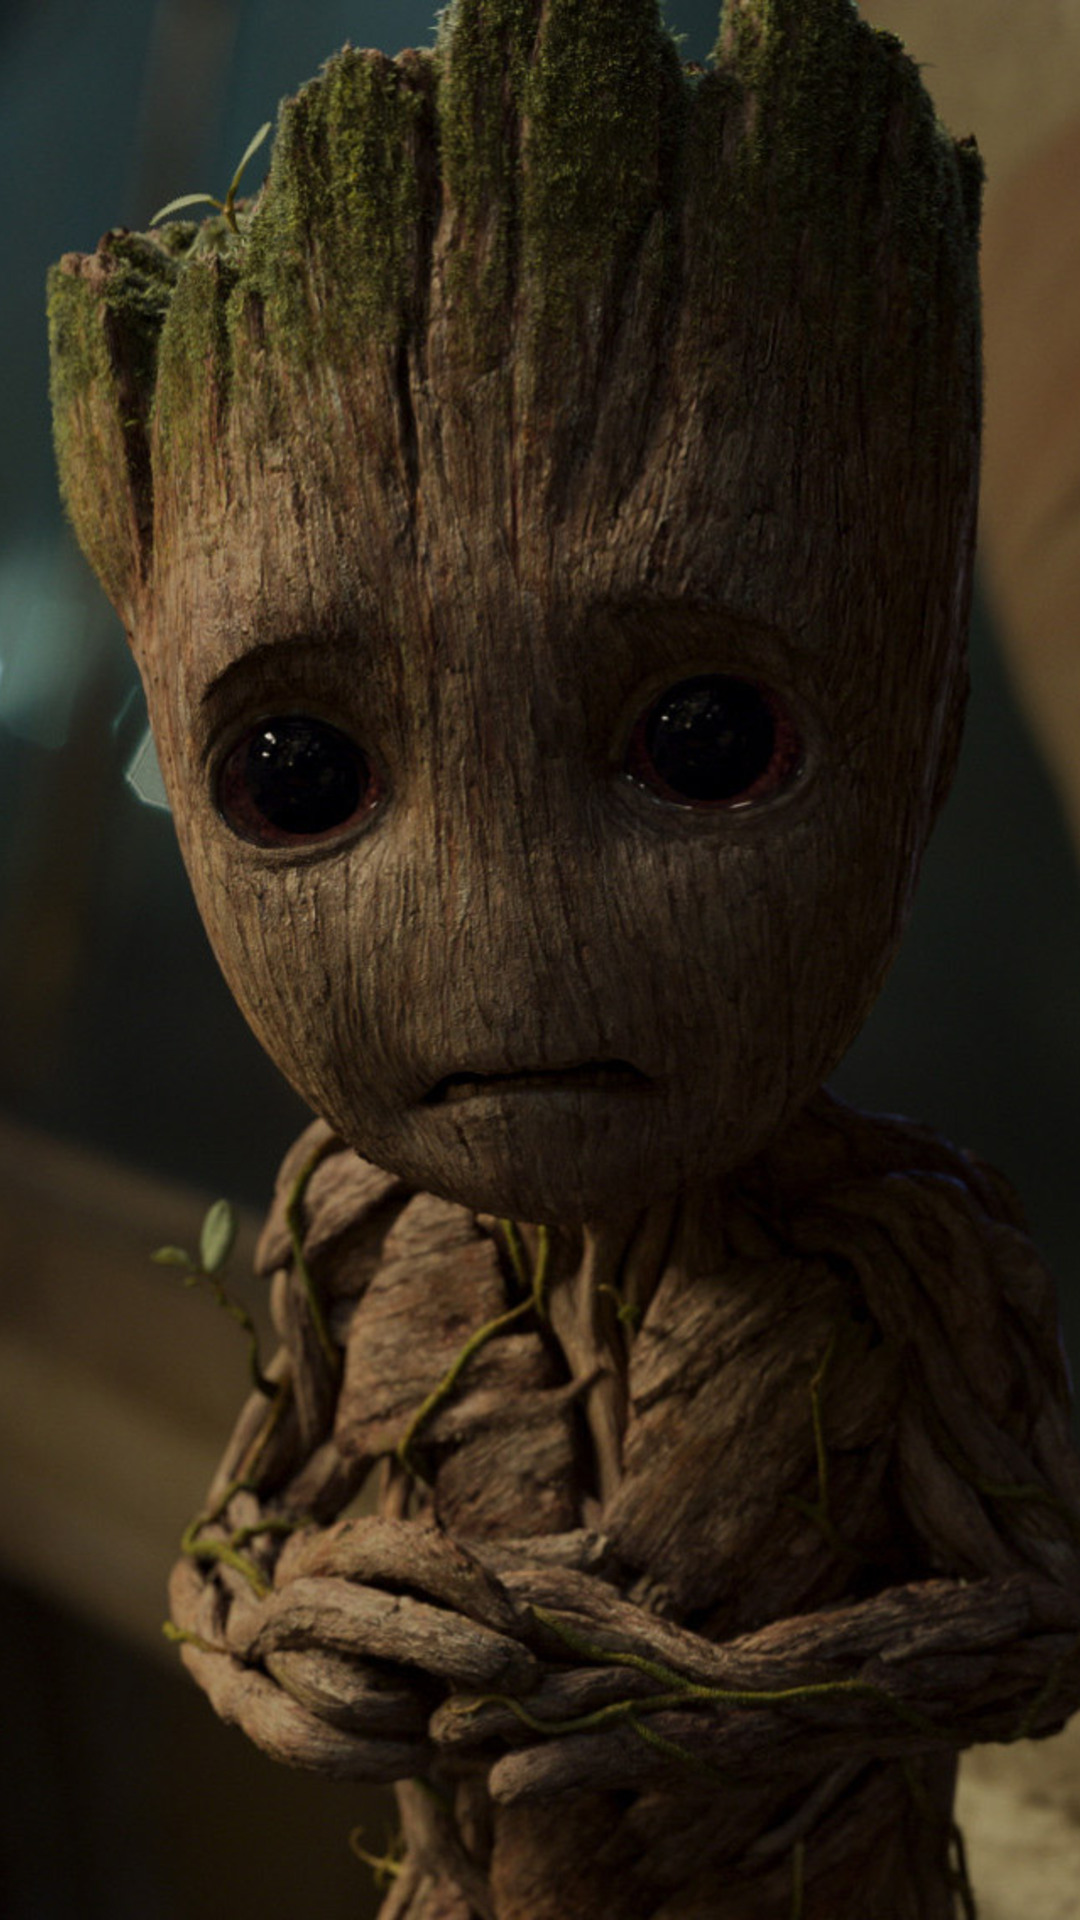 baby-groot-in-guardians-of-the-galaxy-vol-2-4k.jpg